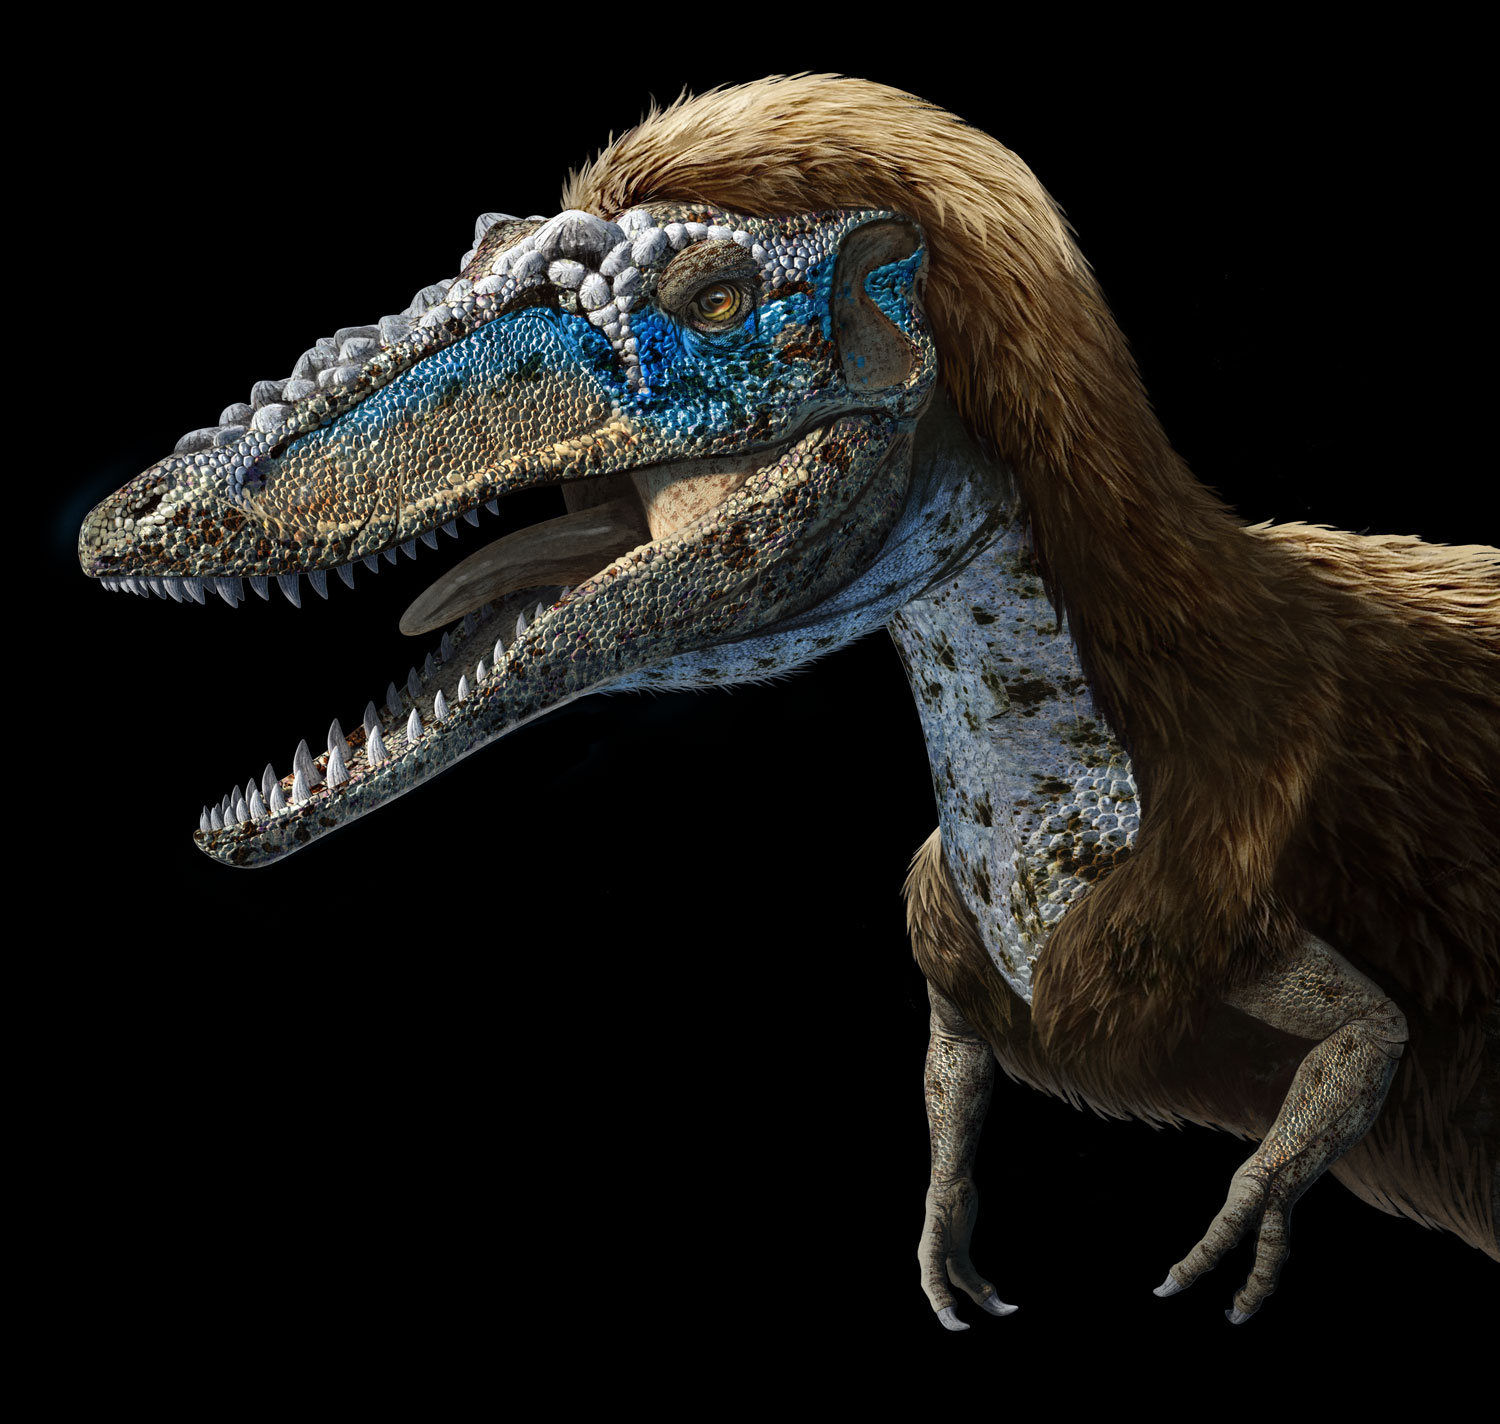 New Stars in the Dinosaur World, PM Magazin April 2015. Qianzhousaurus sinensis, aka Pinocchio rex. Art by Román García Mora.